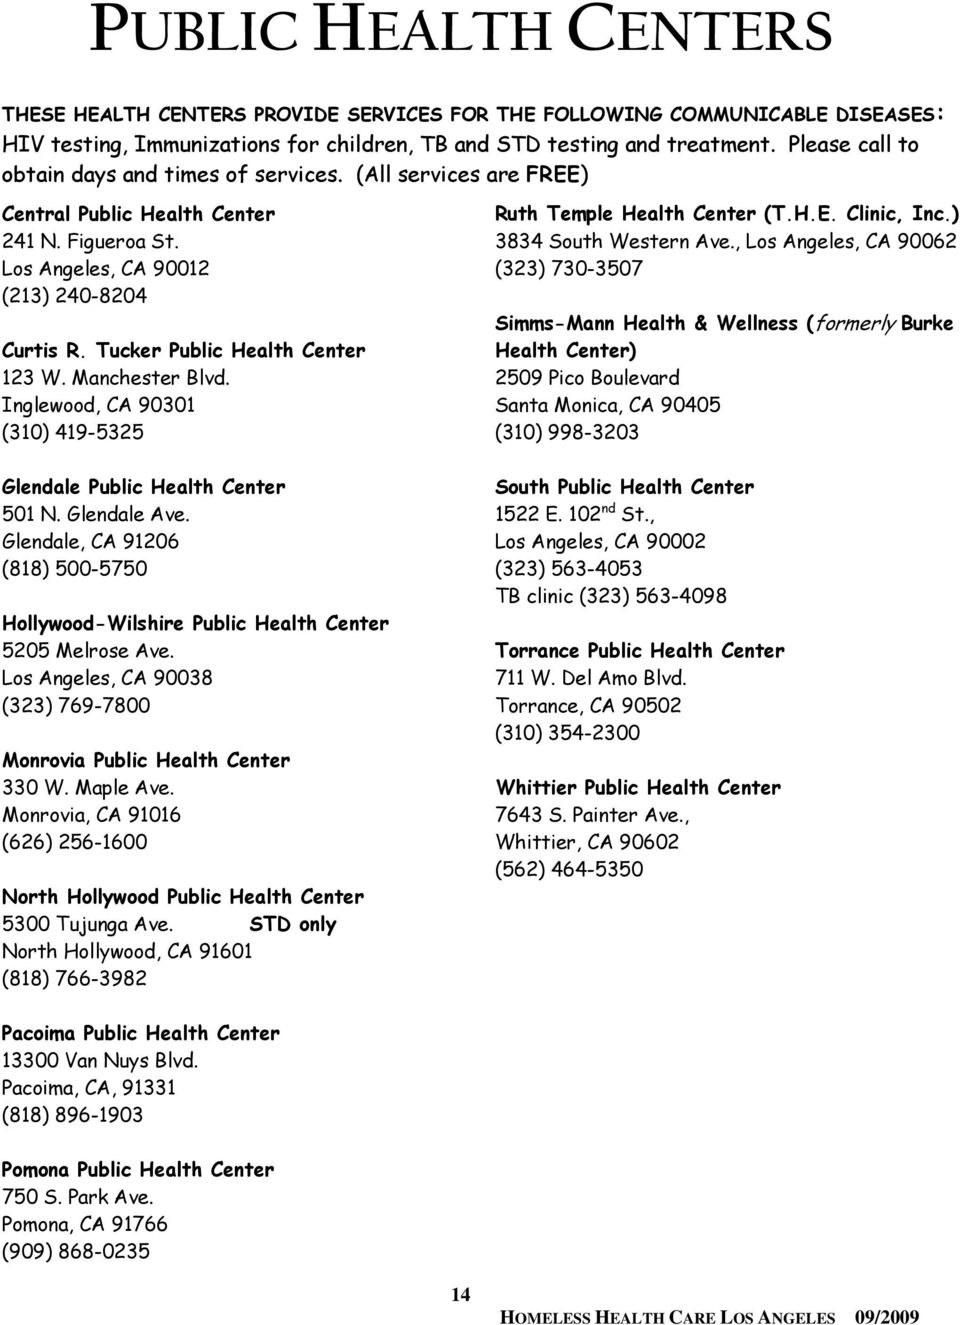 Tucker Public Health Center 123 W. Manchester Blvd. Inglewood, CA 90301 (310) 419-5325 Ruth Temple Health Center (T.H.E. Clinic, Inc.) 3834 South Western Ave.